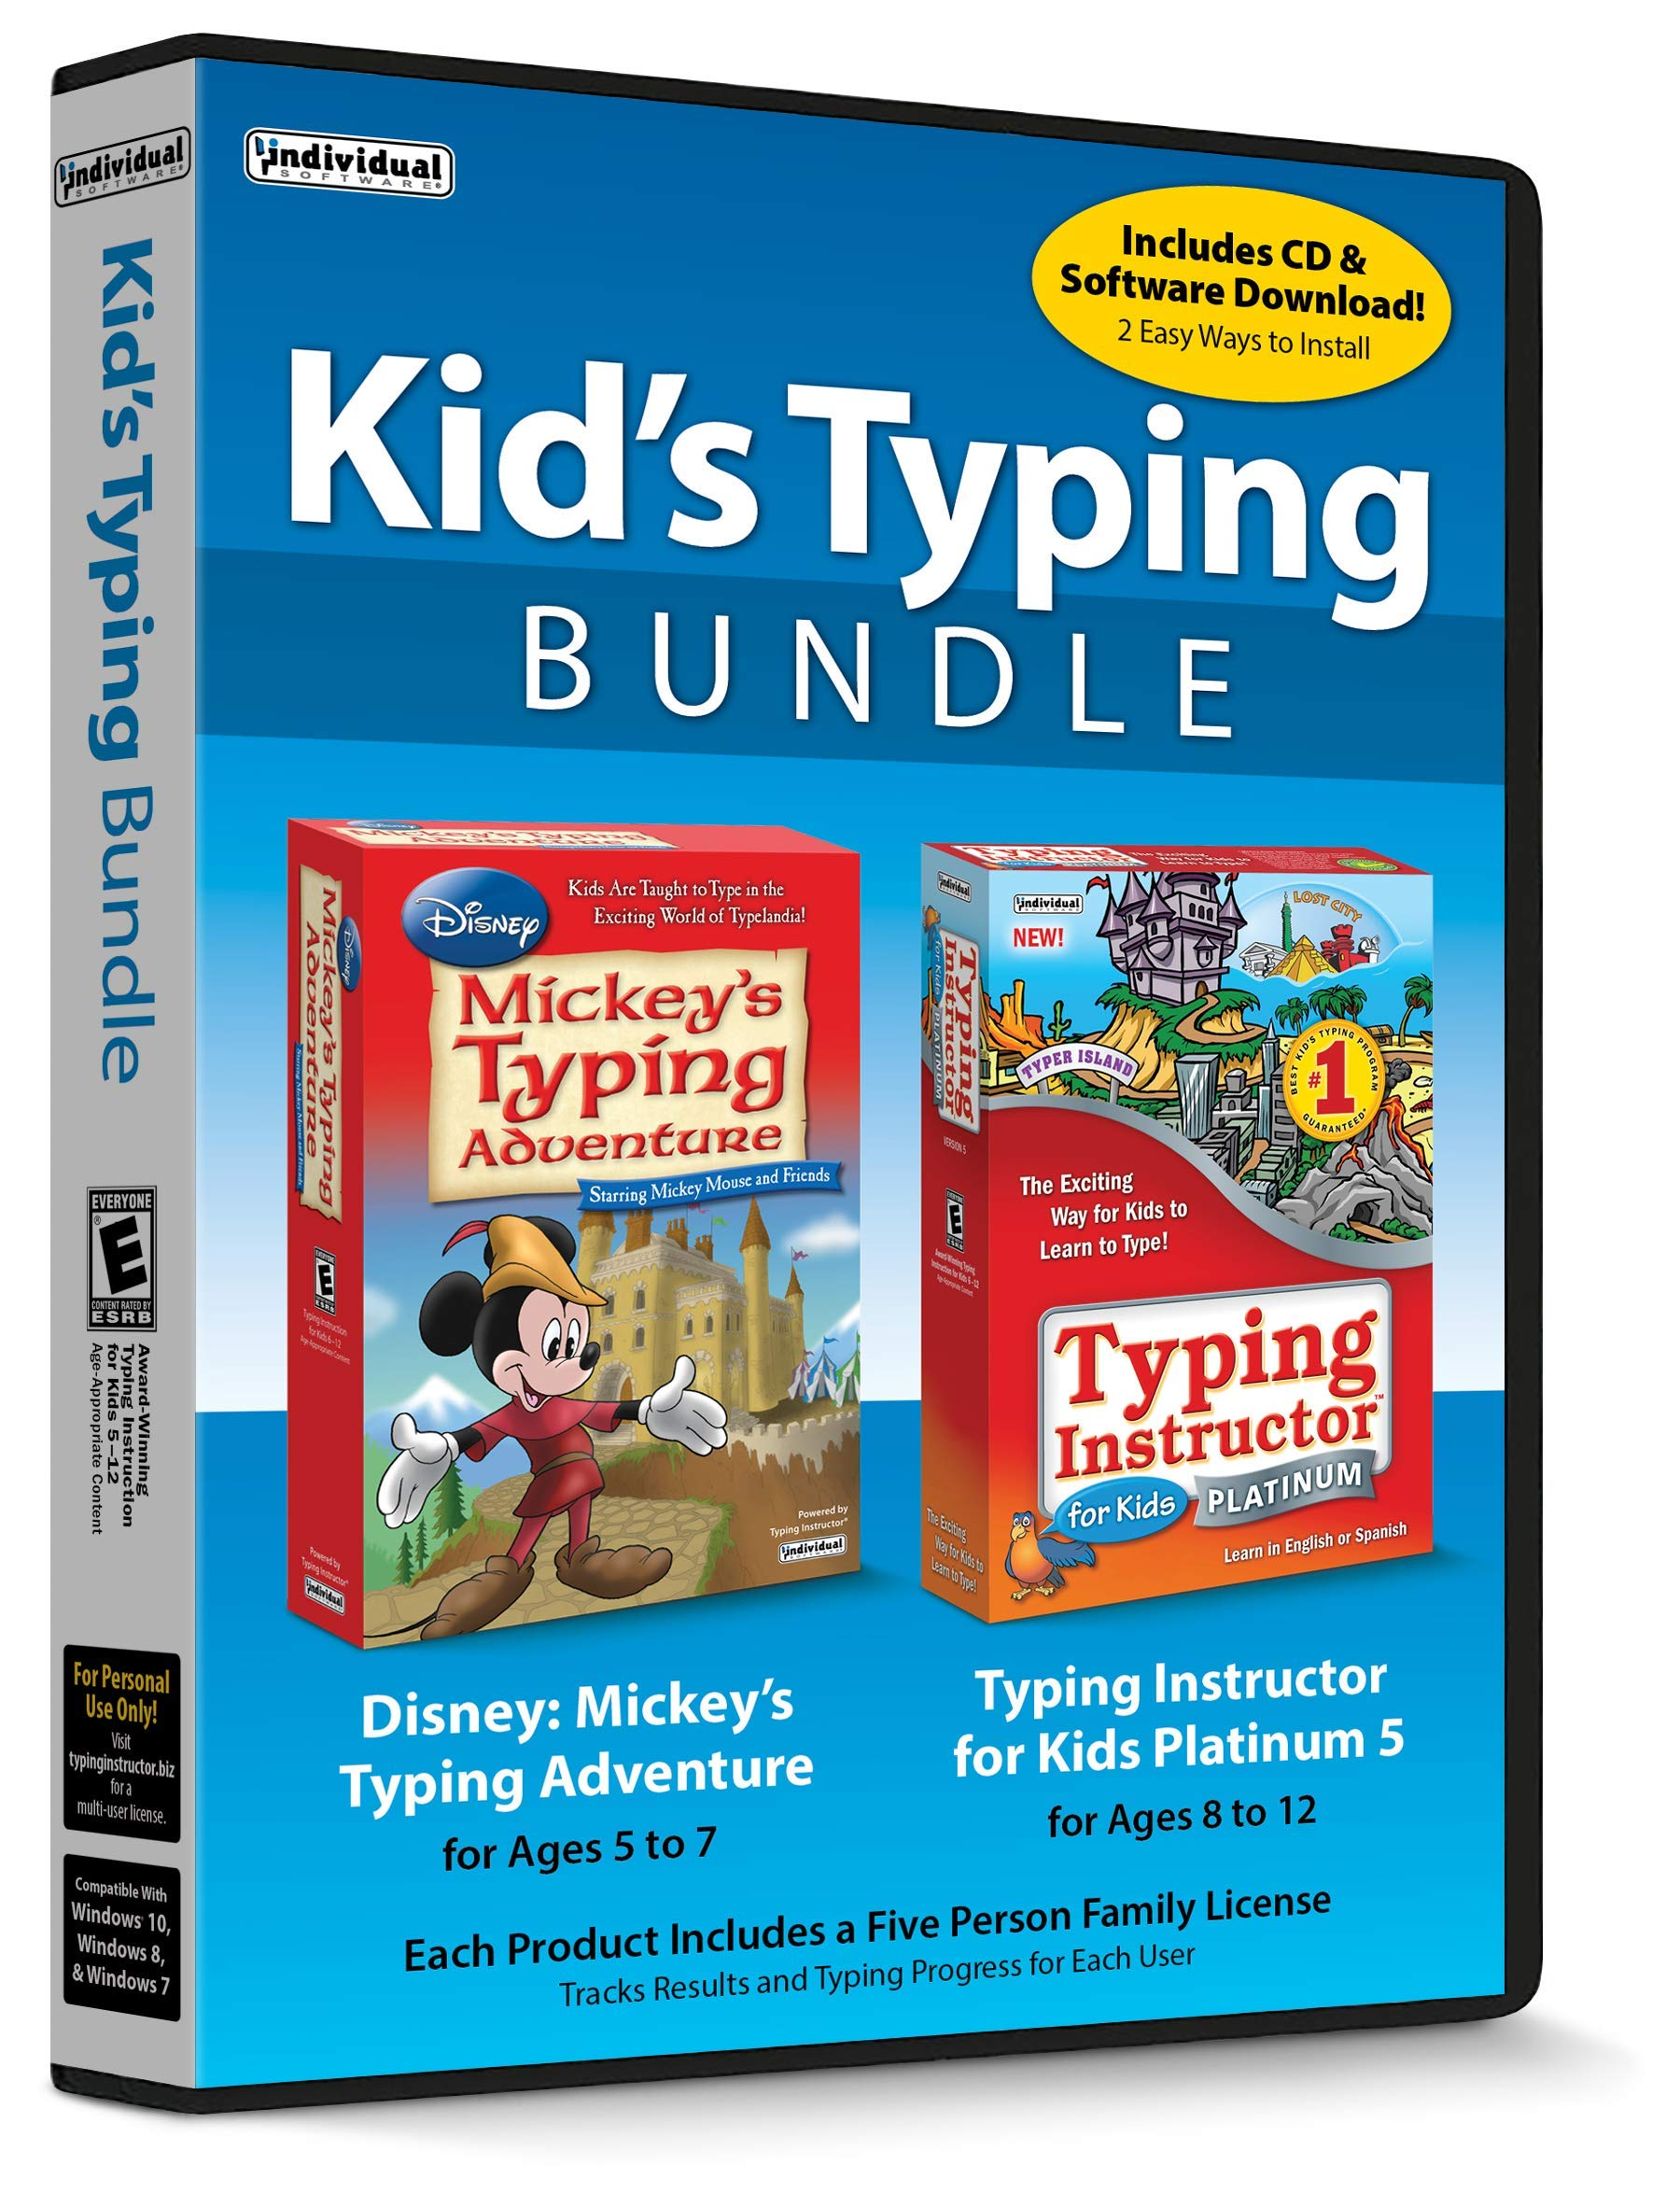 Kid's Typing Bundle by Individual Software